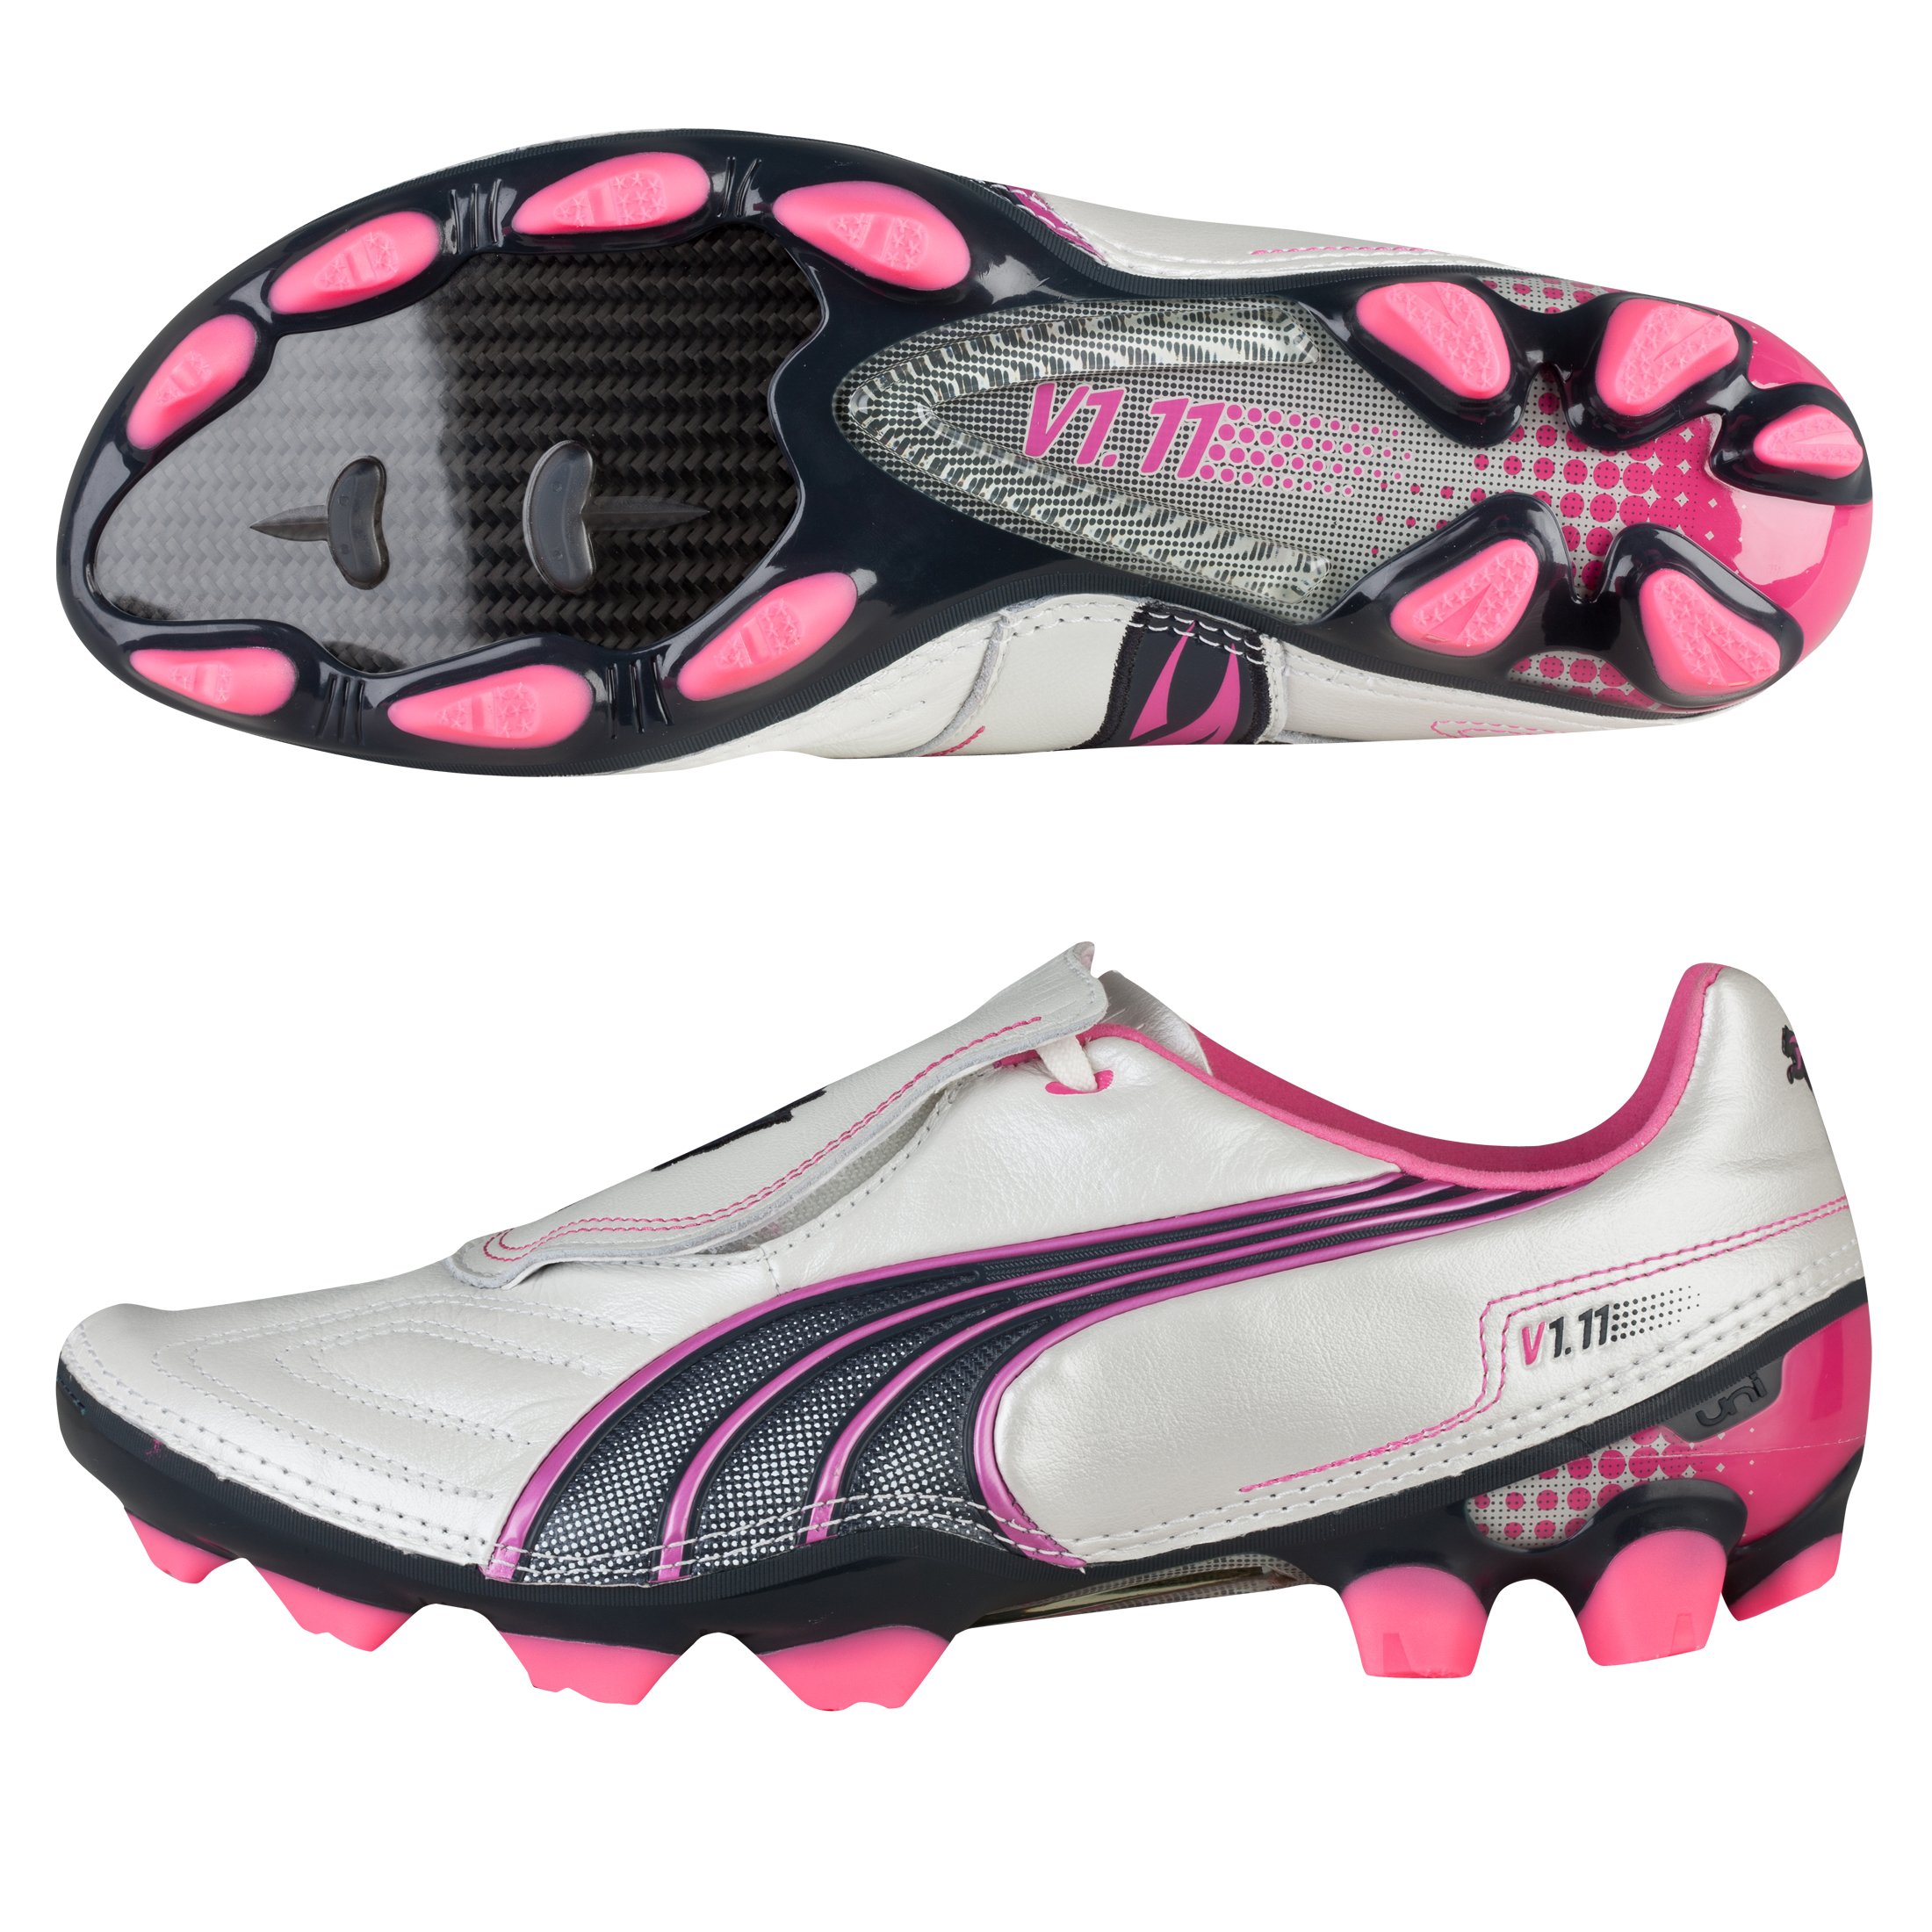 Puma v1.11 K Firm Ground Football Boot - White Pearl/New Navy/Fluo Pink